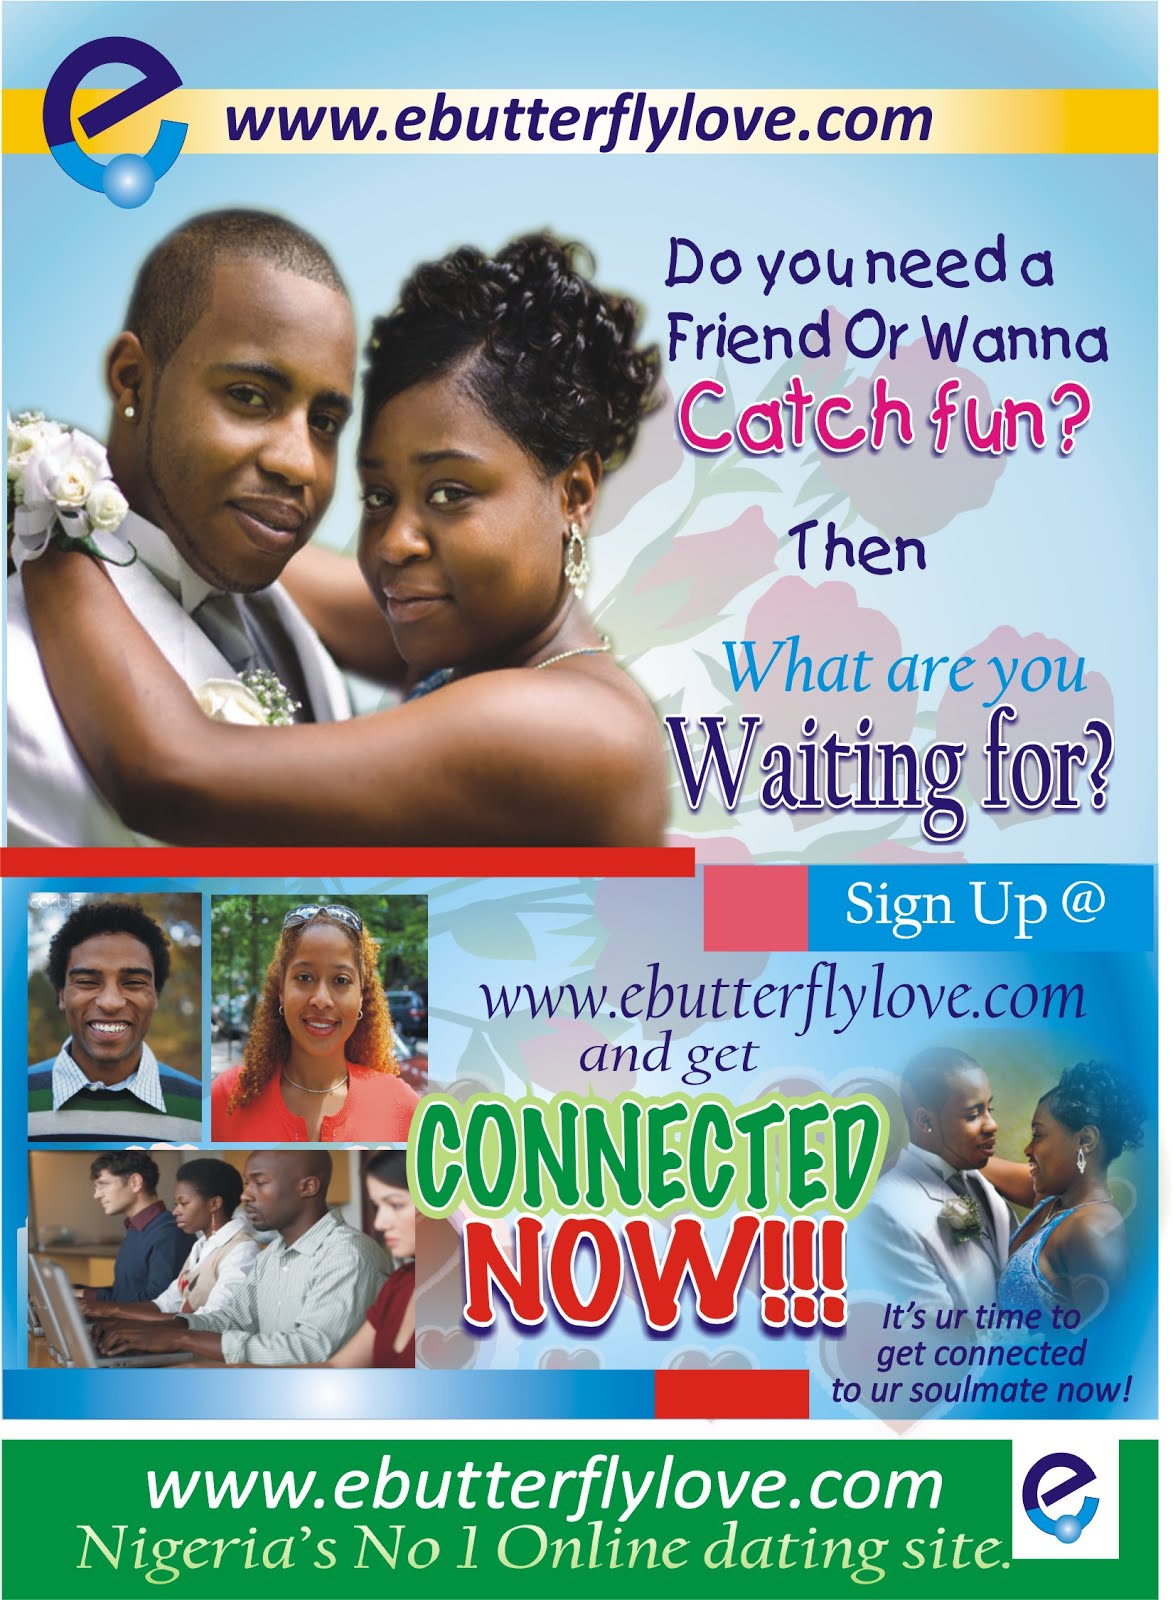 Dating site that is coming to you very soon.....